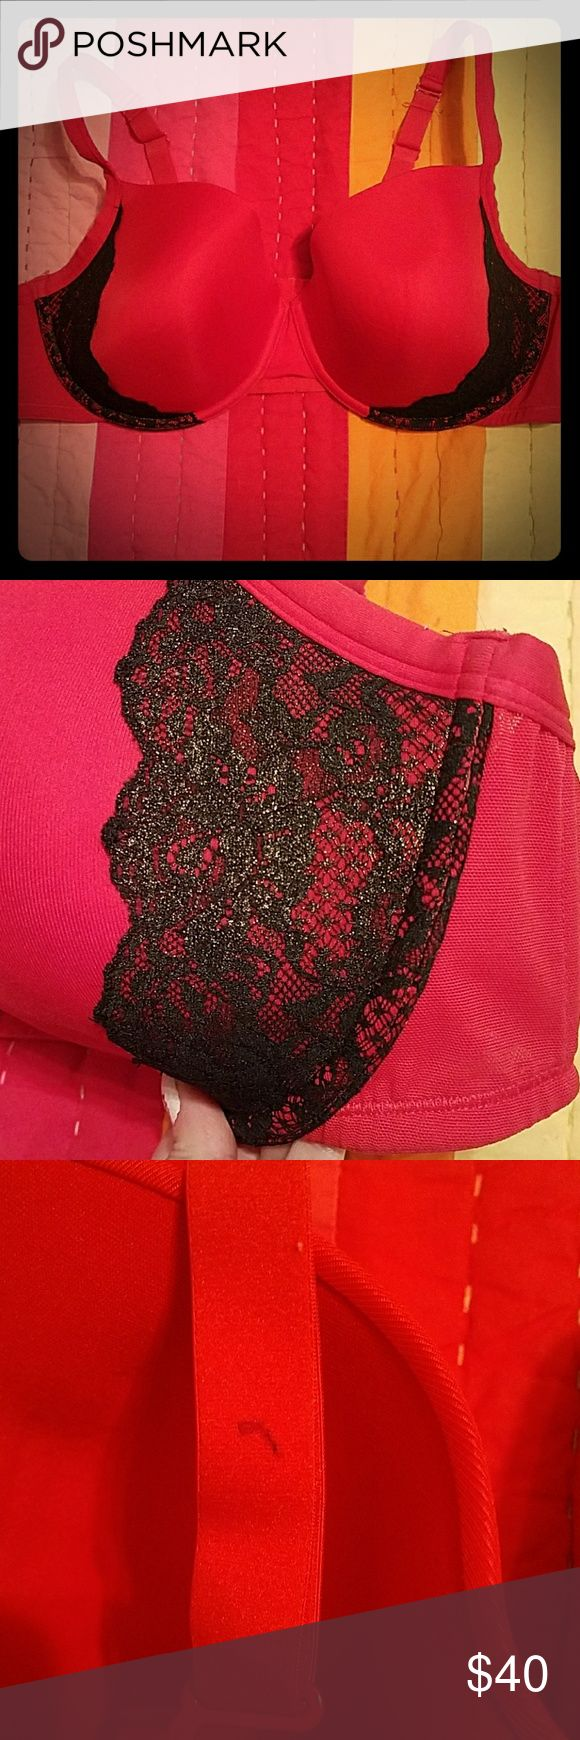 Sexy lacy red plus size bra, like new This is a Cacique (Lane Bryant) bra that is now too big for me since I've lost 60 lbs. I don't wear red often, so it was only worn a handful of times on Valentine's Day. It's red with black/gold lace on the sides. It has molded cups with no padding. Cacique Intimates & Sleepwear Bras